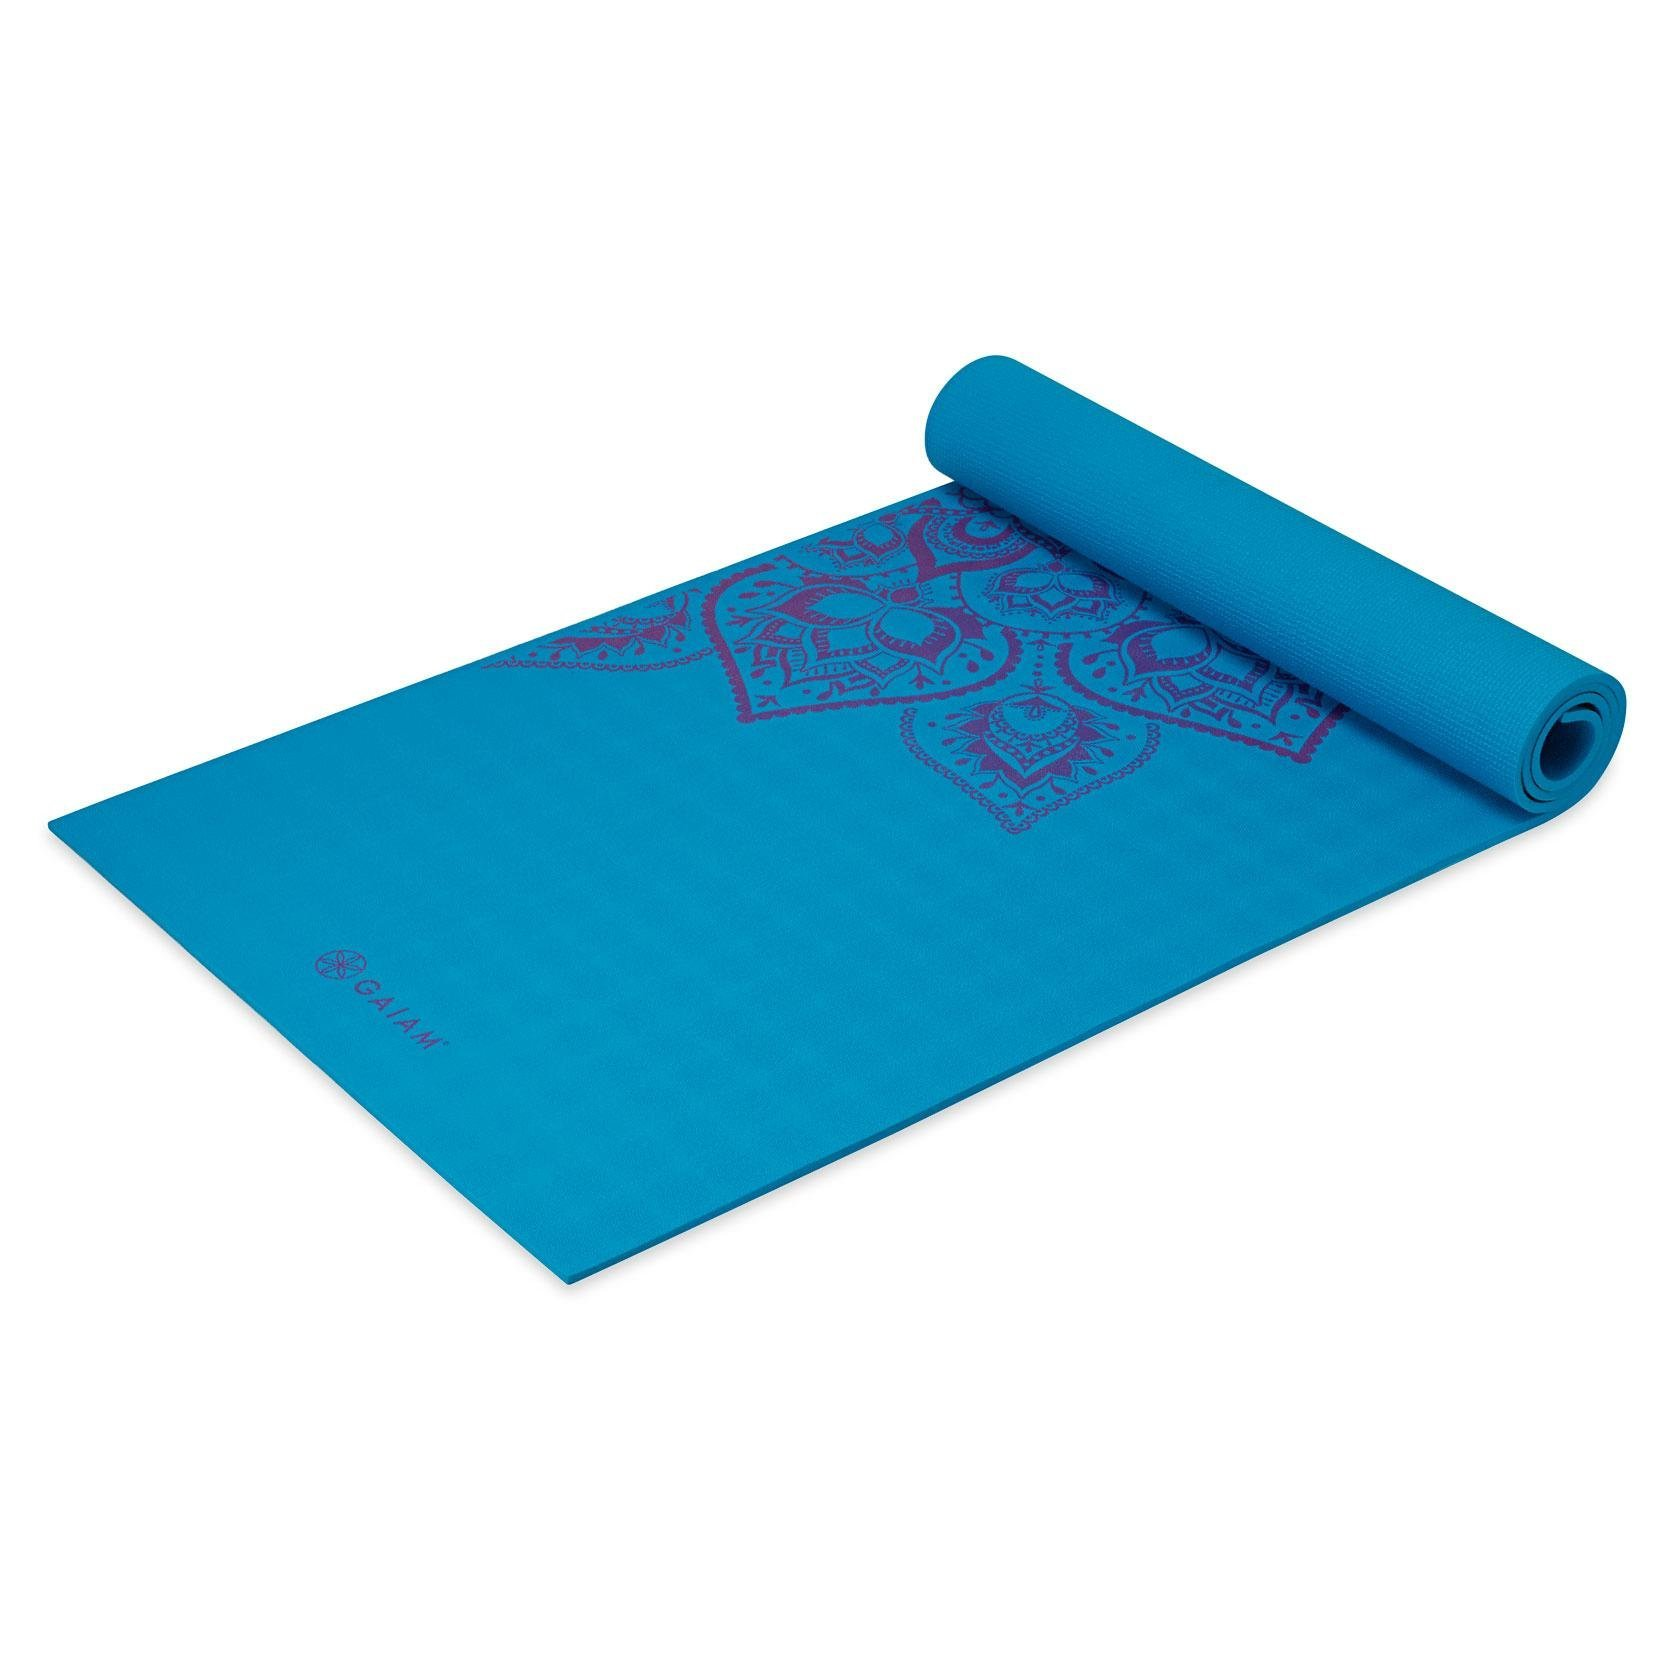 Amazon.com: Gaiam sol Studio seleccione sticky-grip ...